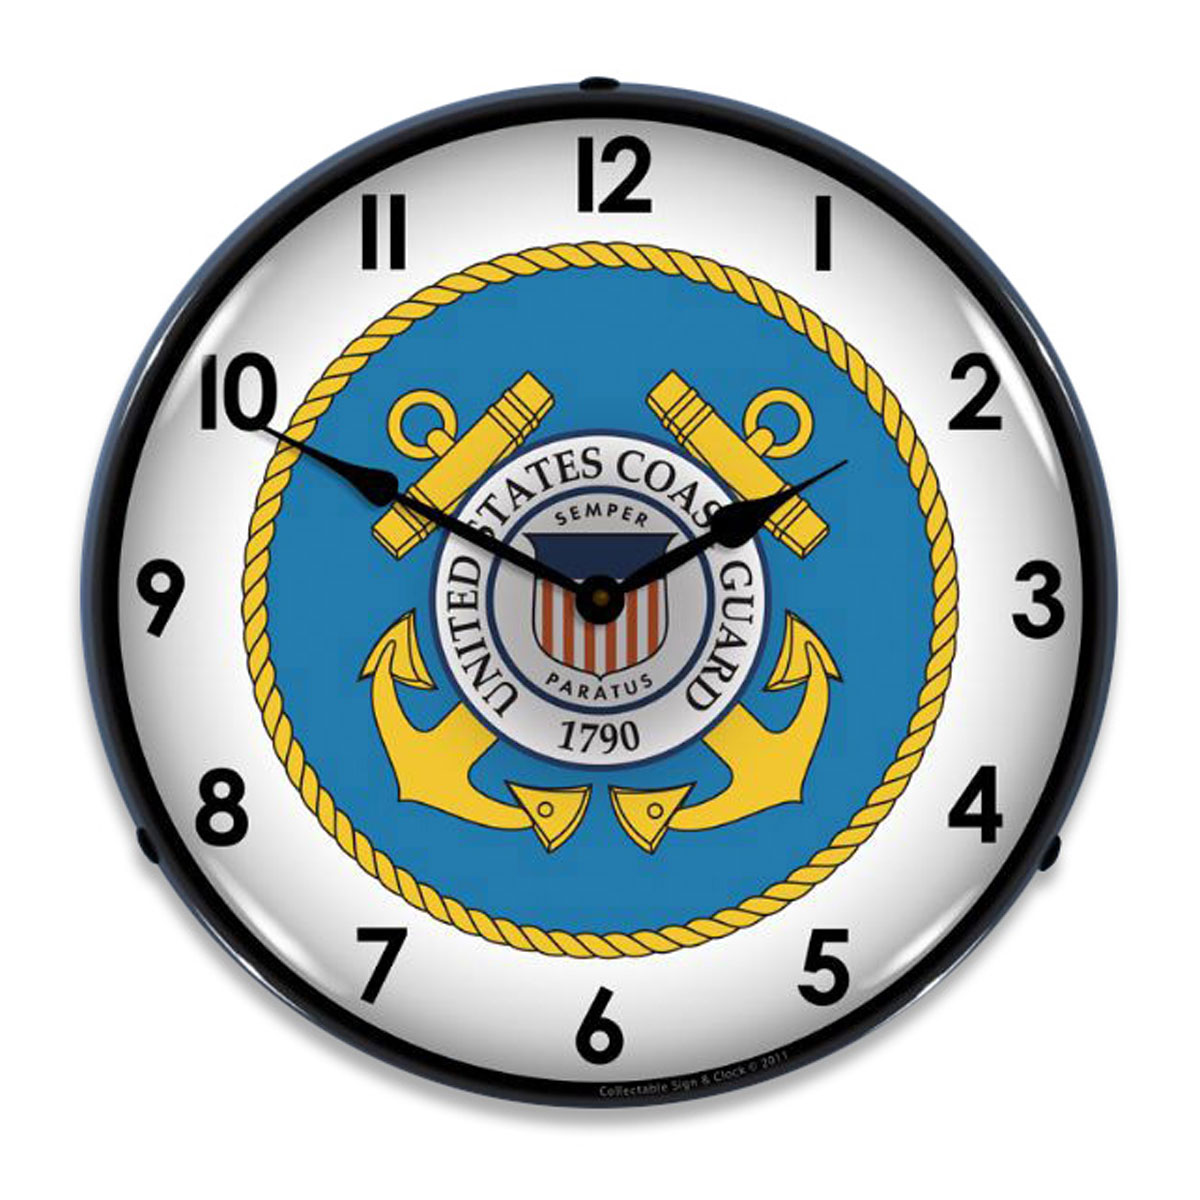 Us coast guard logo light up clock military clocks retroplanet amipublicfo Image collections